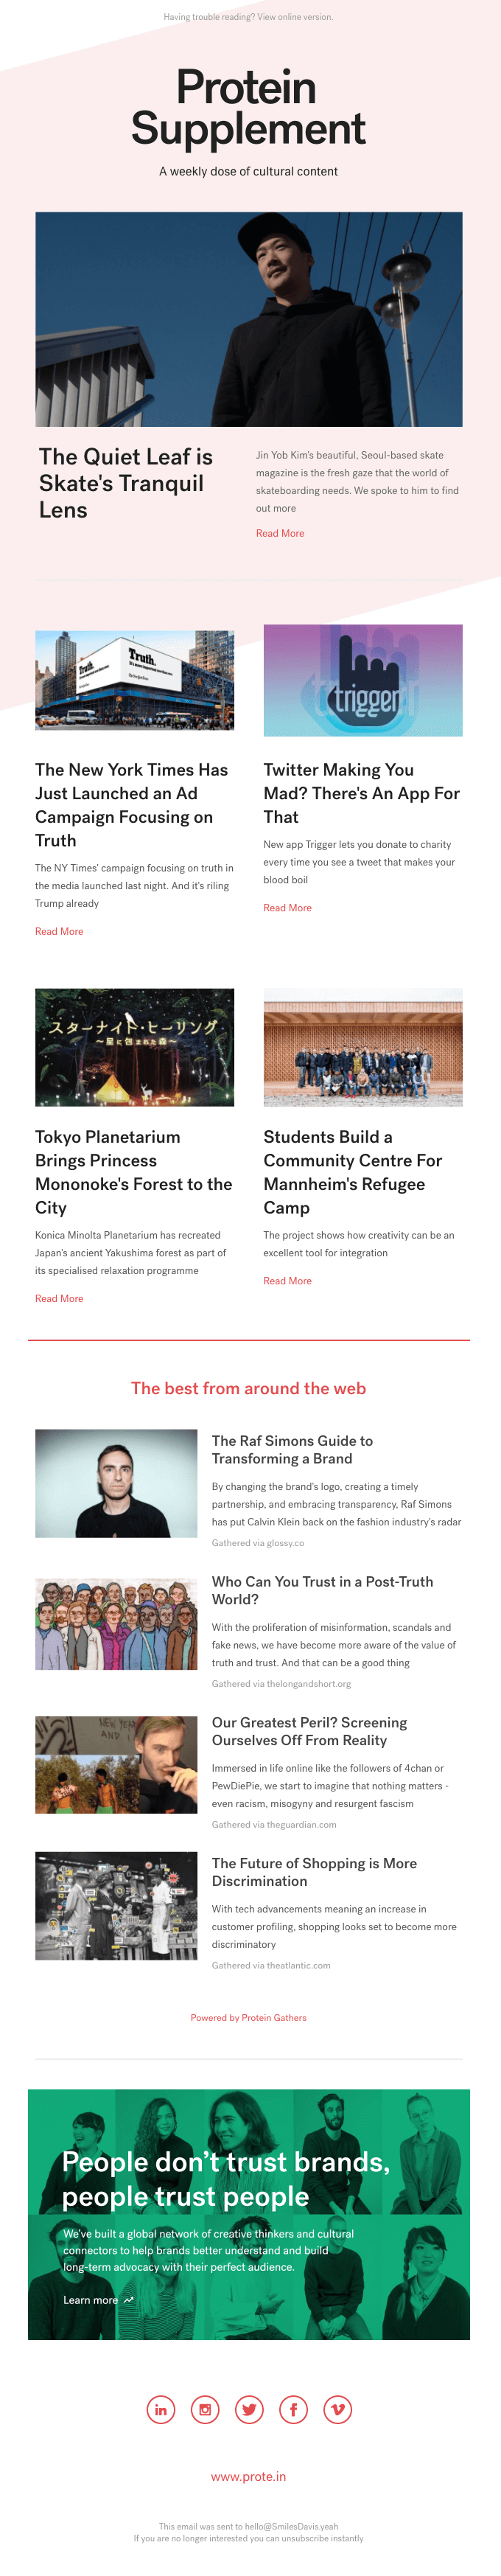 652 Discover Seoul S Skateboarding Scene With The Quiet Leaf A Tokyo Forest Planetarium Truth Campaign Email Newsletter Inspiration Email Newsletter Design